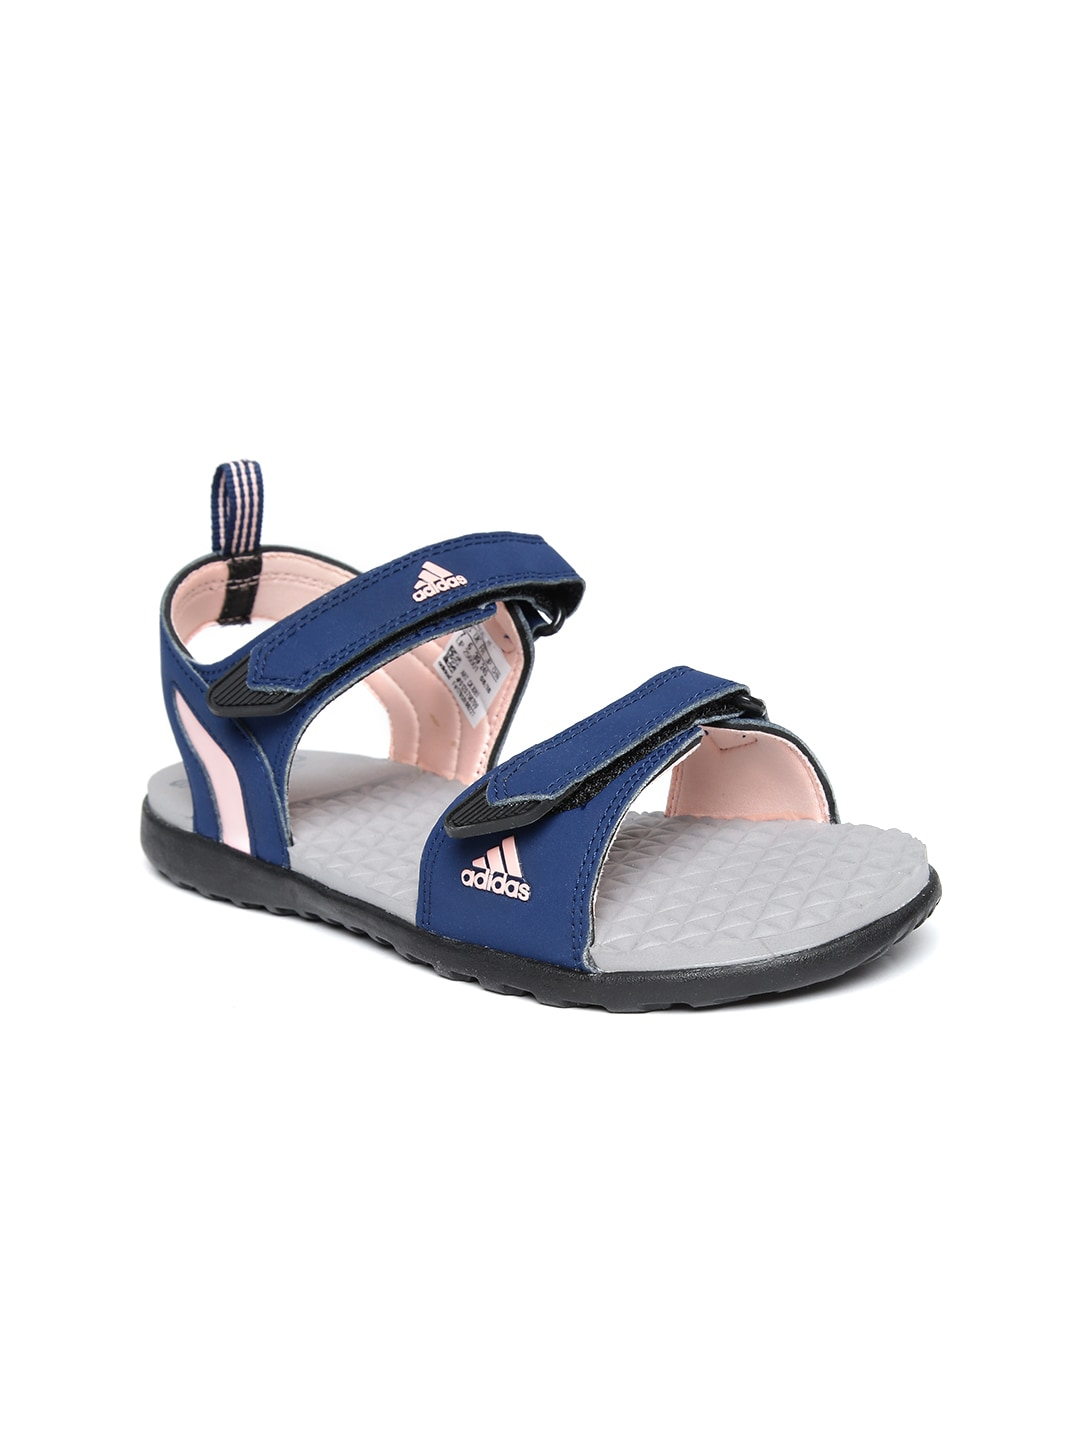 326909ad8 Adidas Floaters - Buy Adidas Sports Sandals Online in India